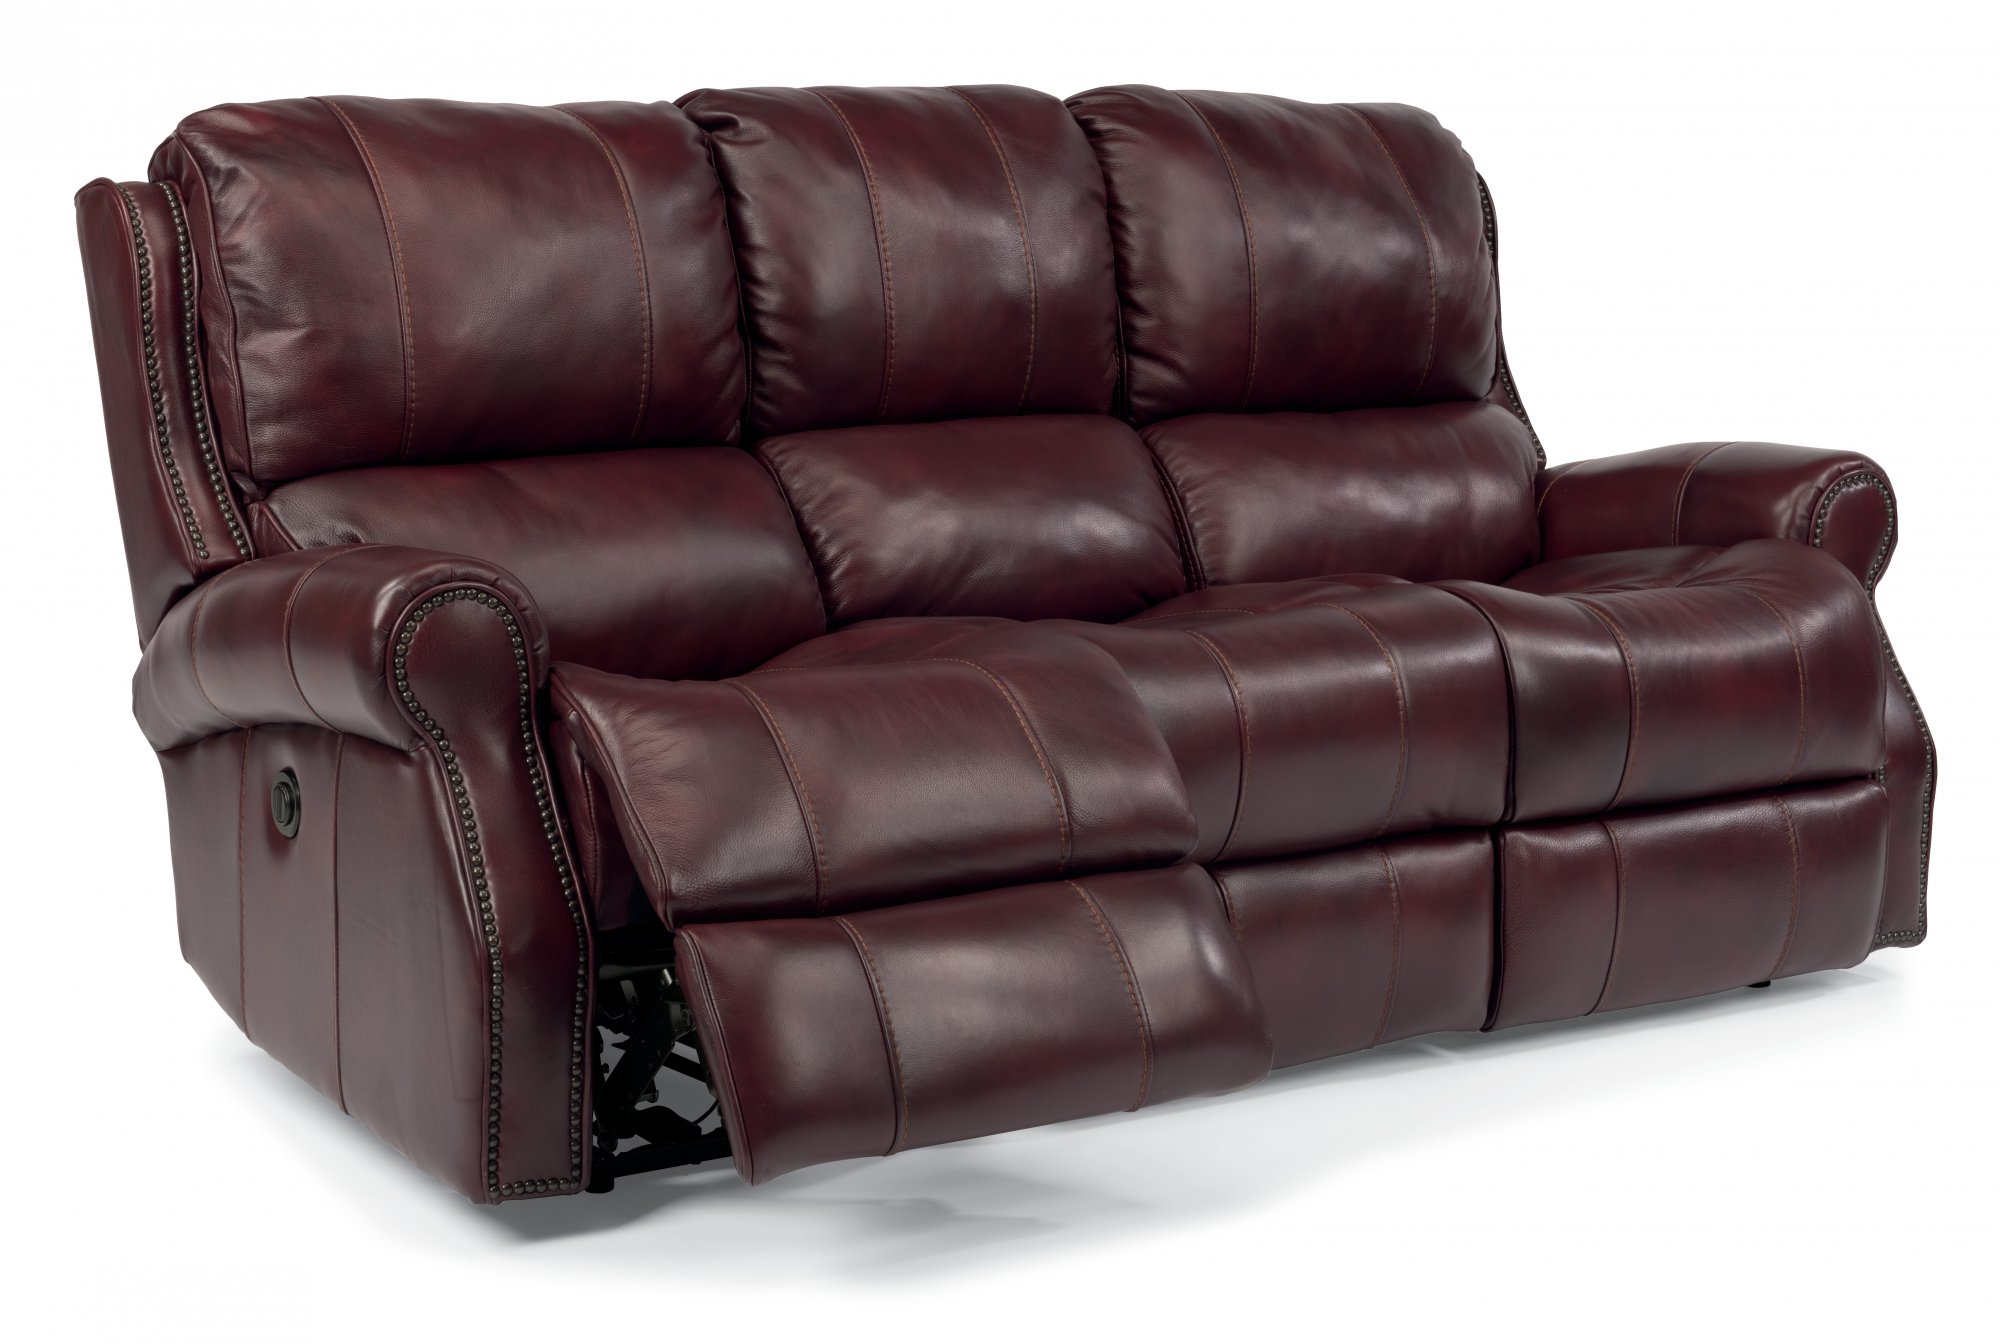 Holmwoods Furniture And Decorating Center Reclining